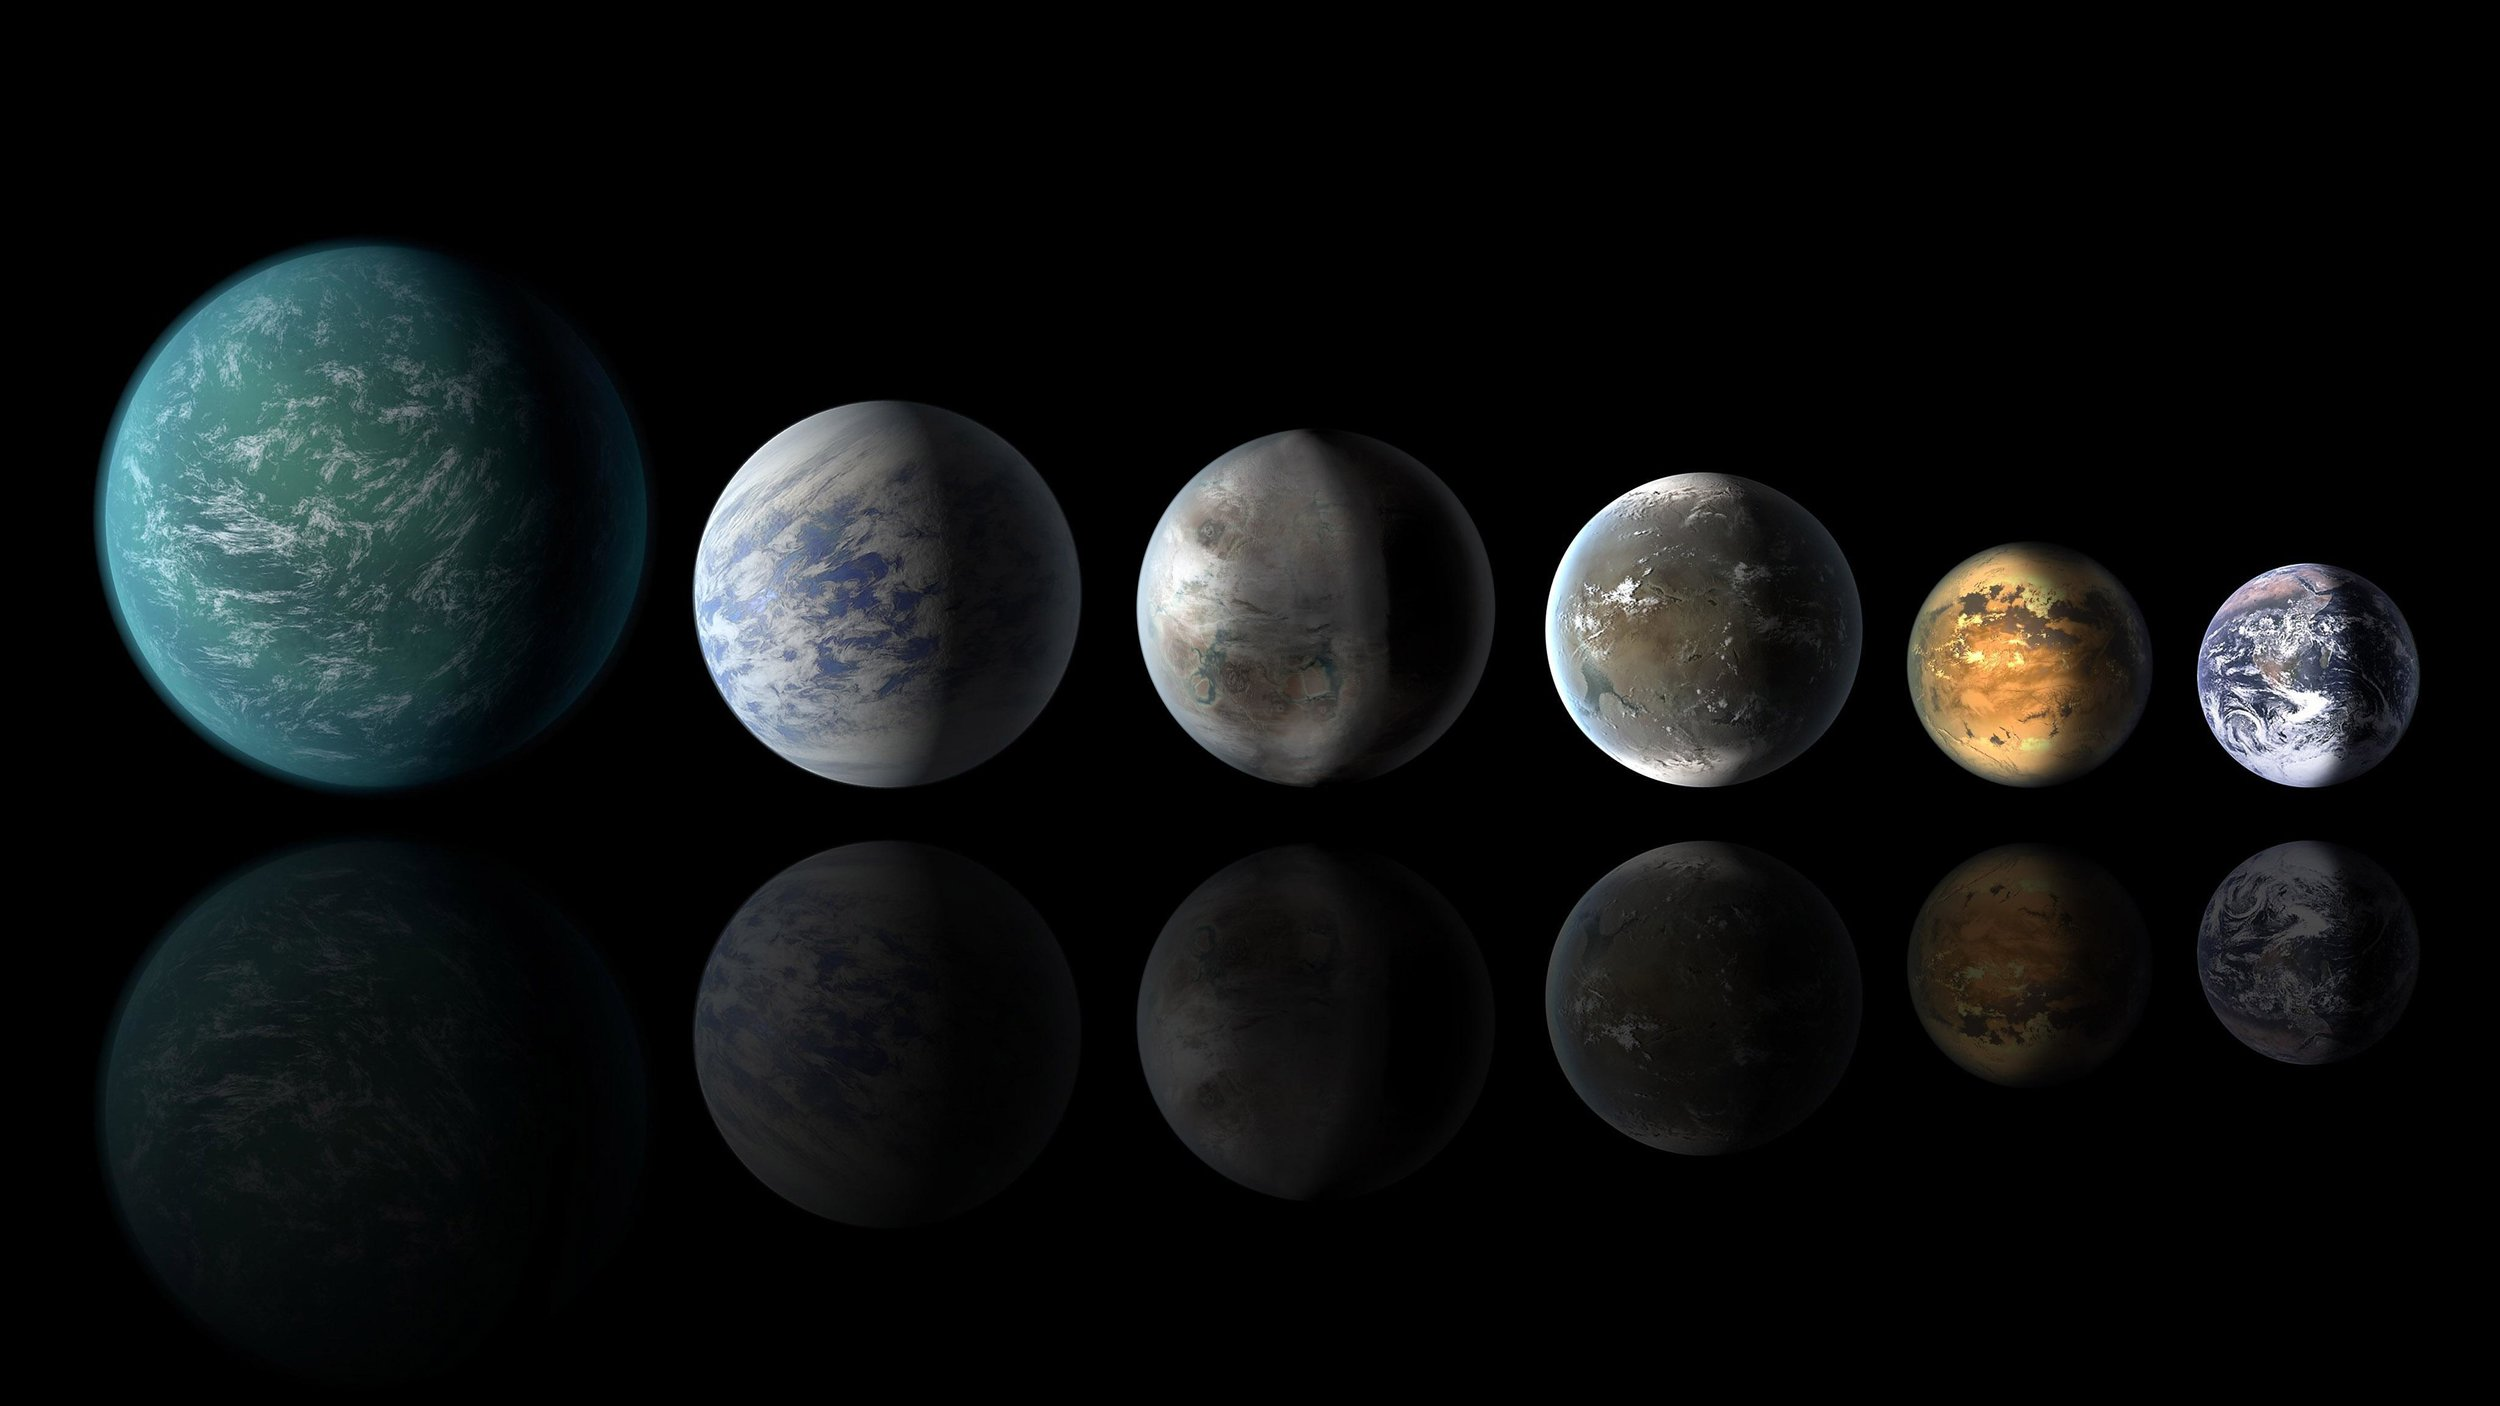 Exoplanets: Left to right: Kepler-22b, Kepler-69c, Kepler-62e, Kepler-62f and Earth (except for Earth, these are artists' concepts). - Image credit: NASA Ames/JPL-Caltech